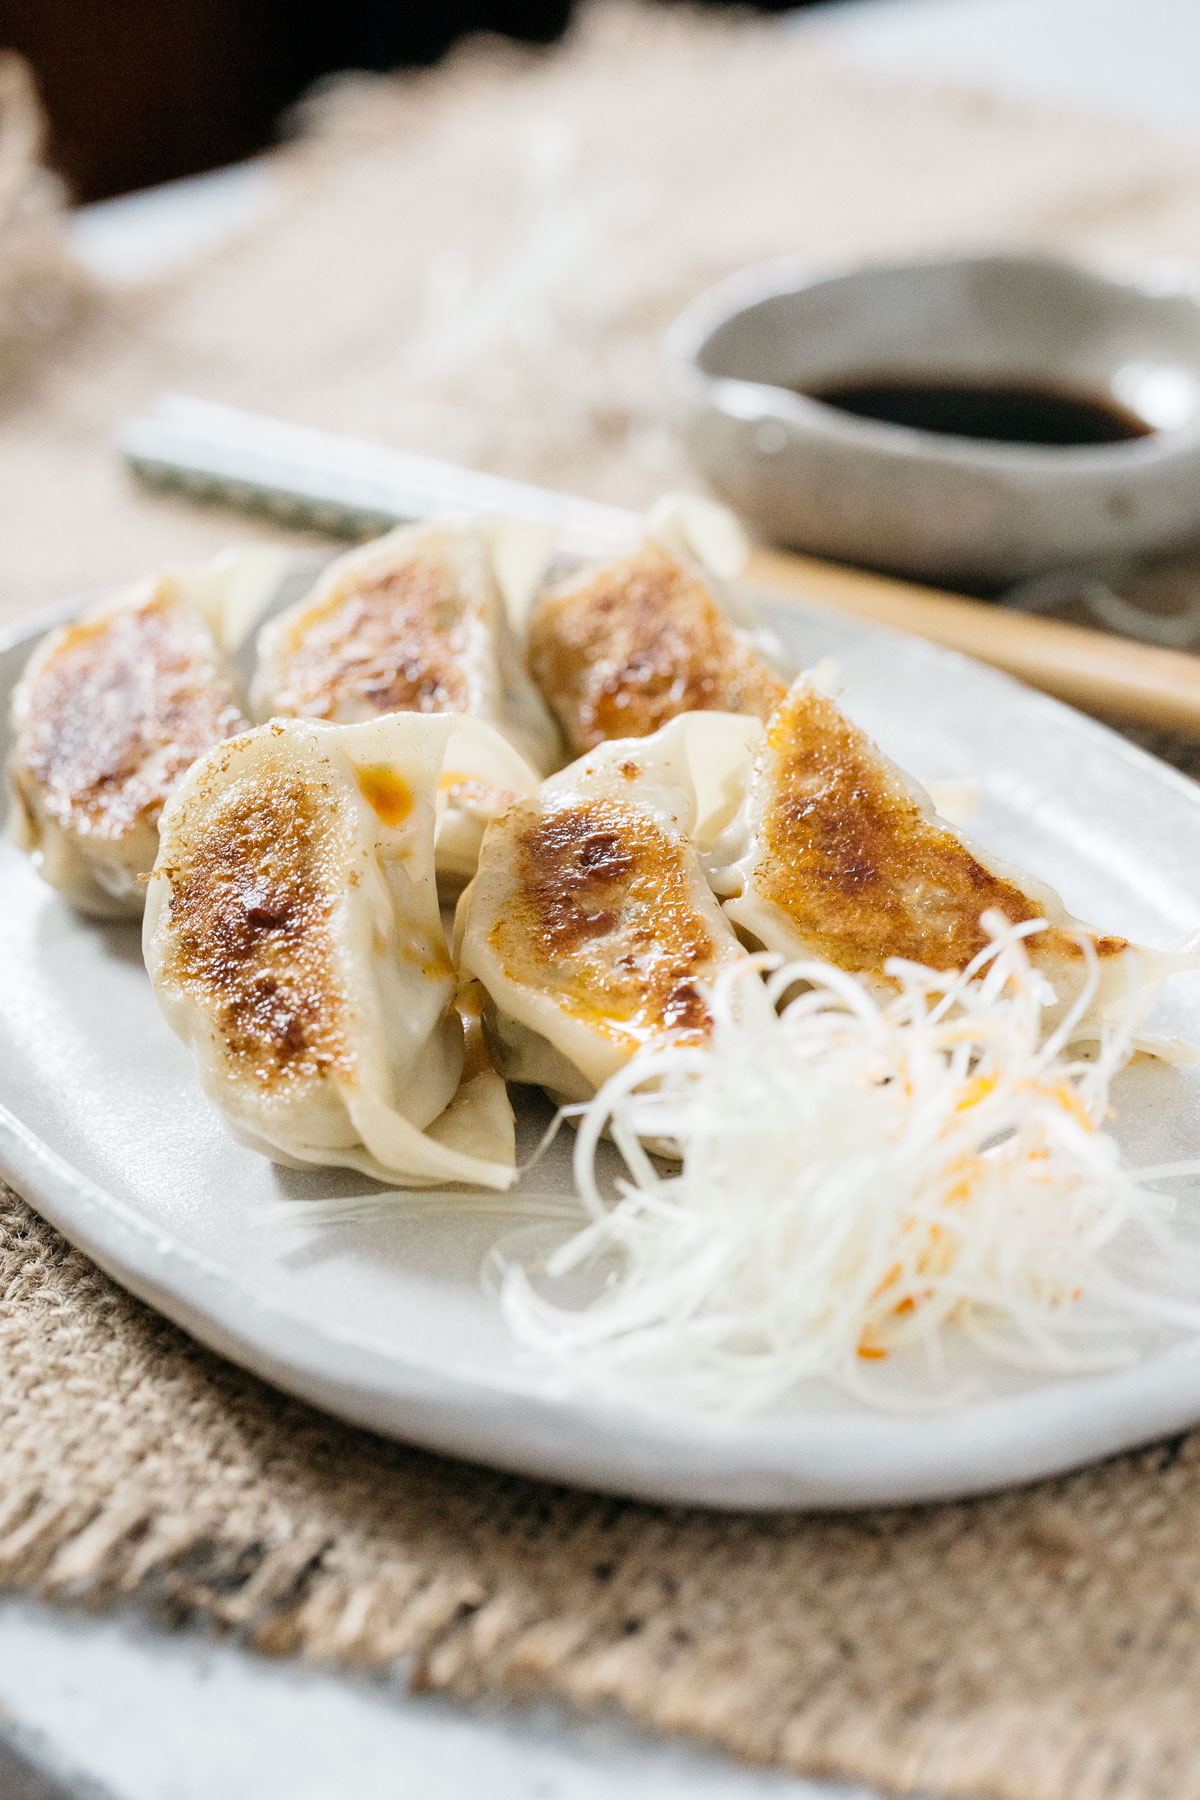 6 Japanese gyoza served on an oval shaped plate